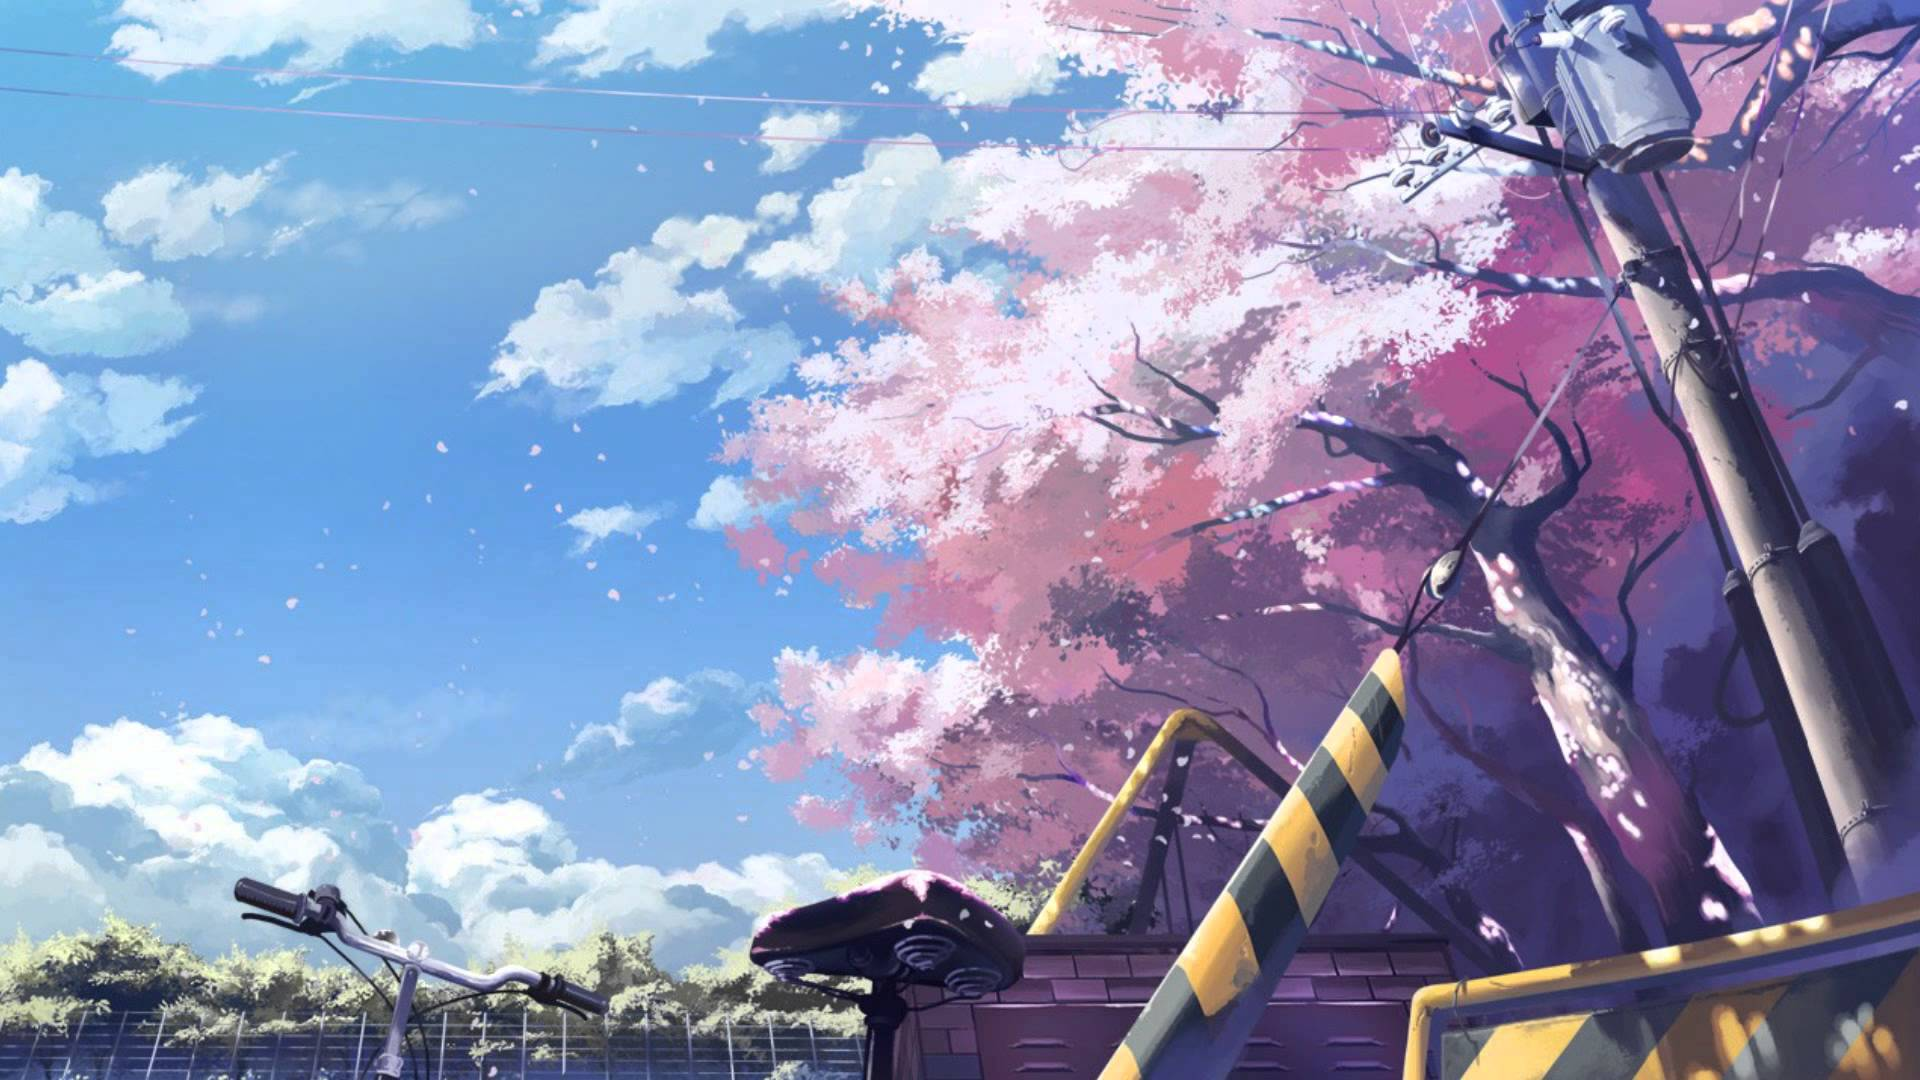 Download Anime Cherry Blossom Background 1920x1080